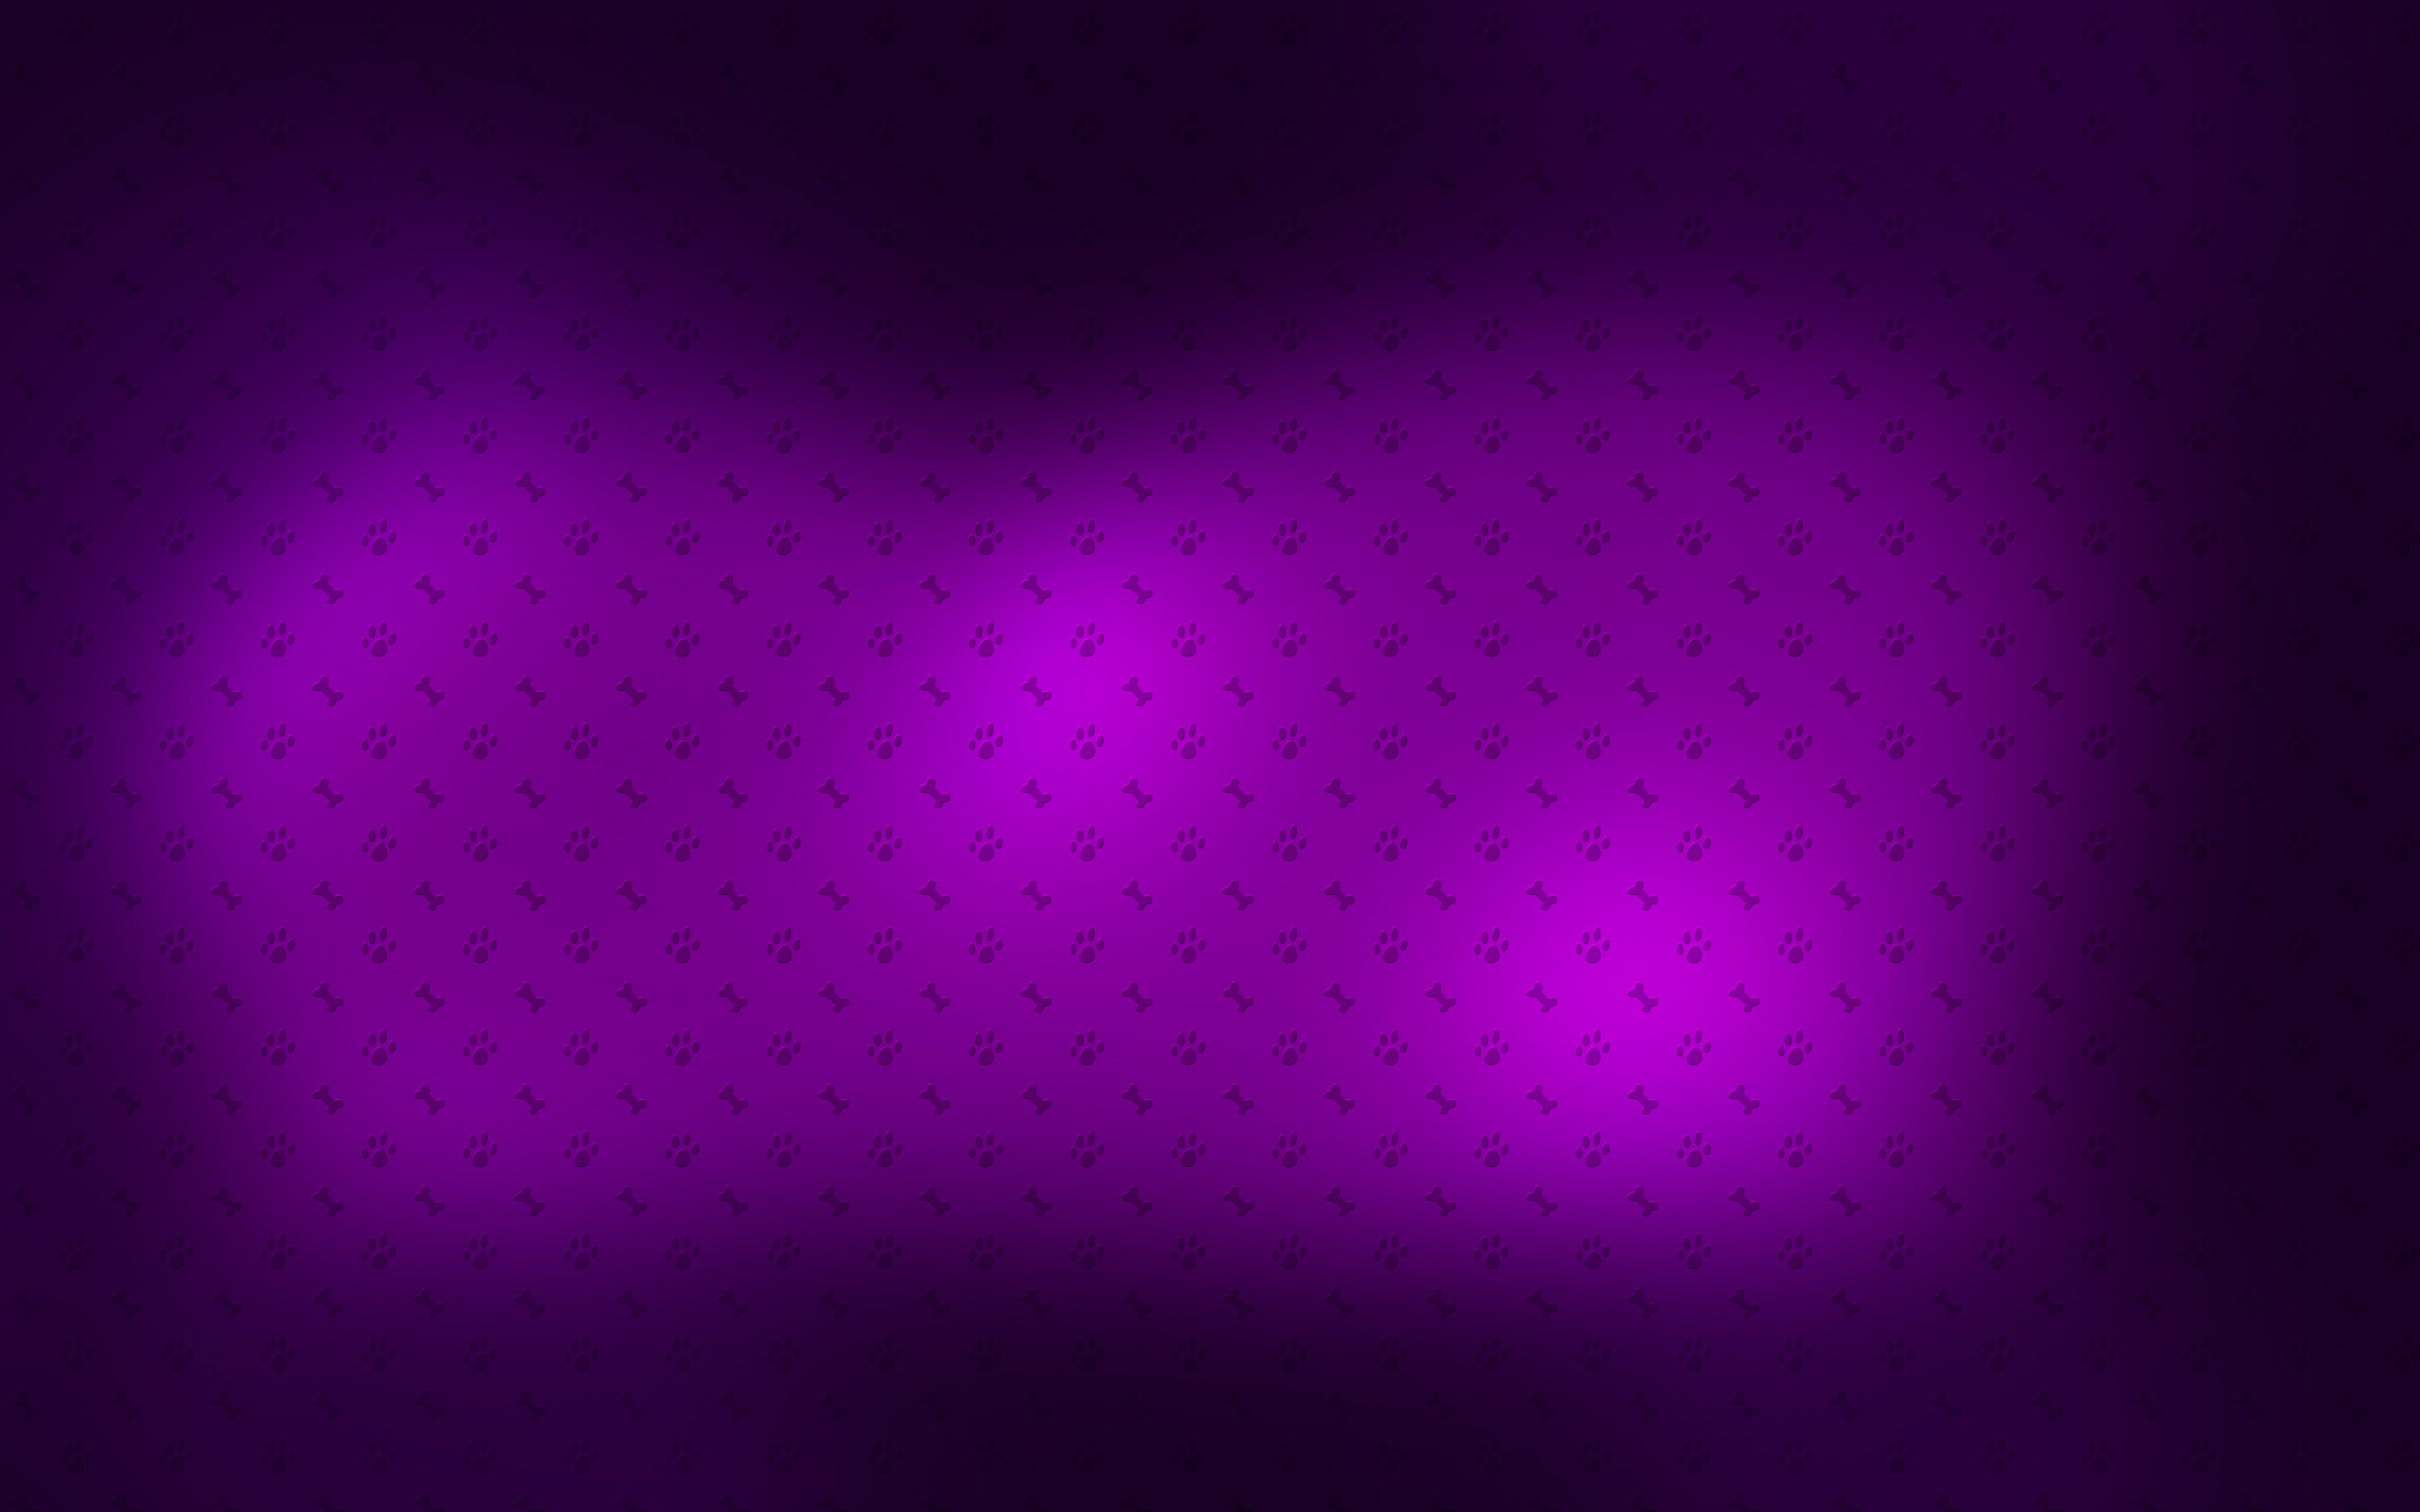 Purple background wallpapers and images   wallpapers pictures photos 2560x1600